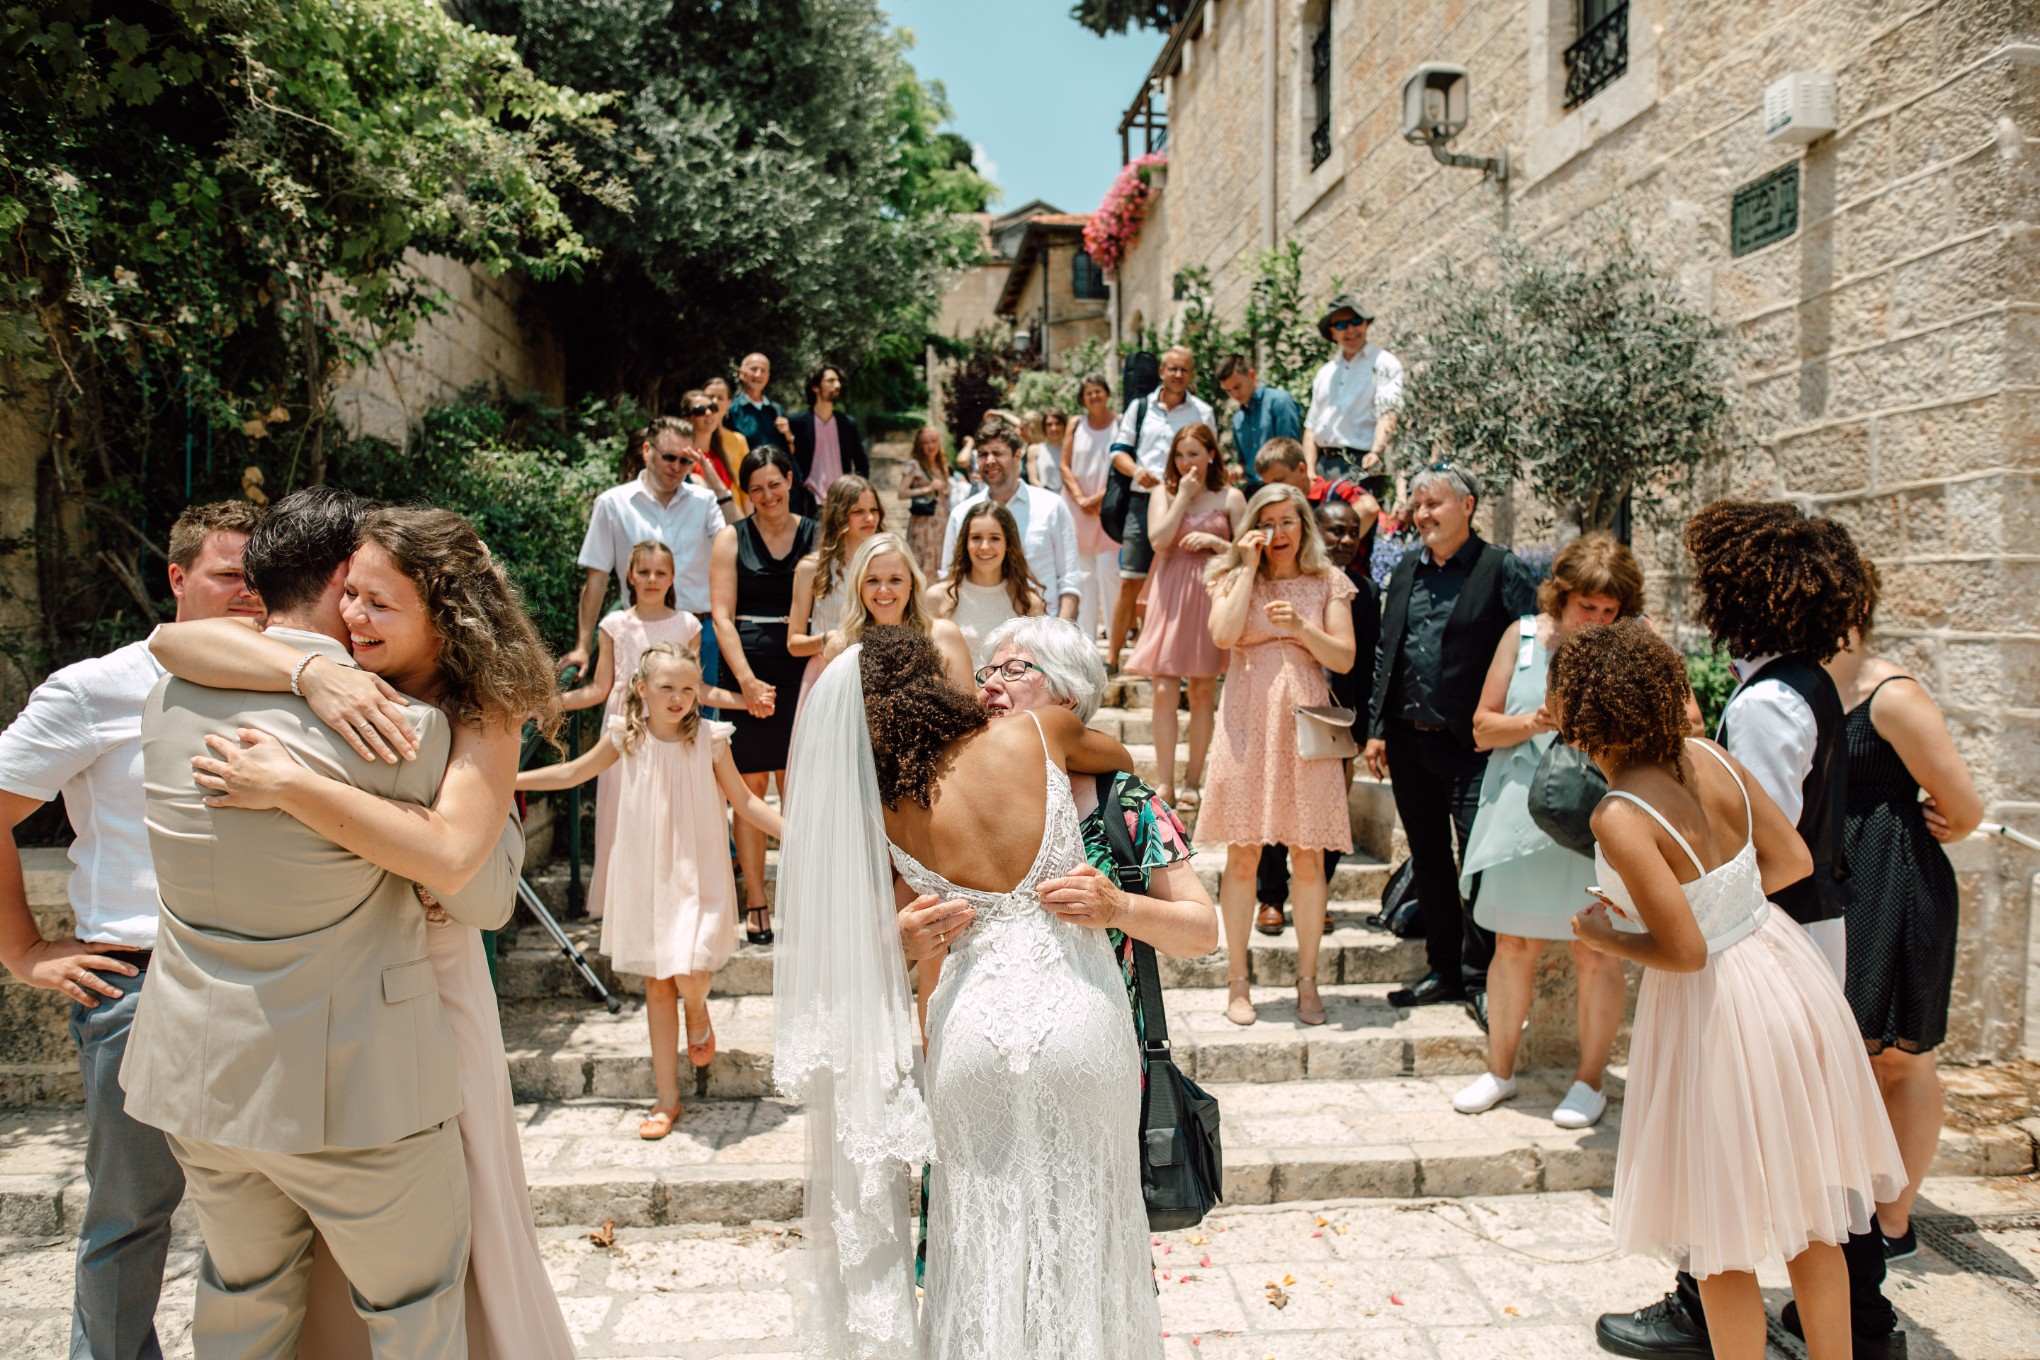 Jerusalem-Pia-Anna-Christian-Wedding-Photography-AD-T-160.jpg